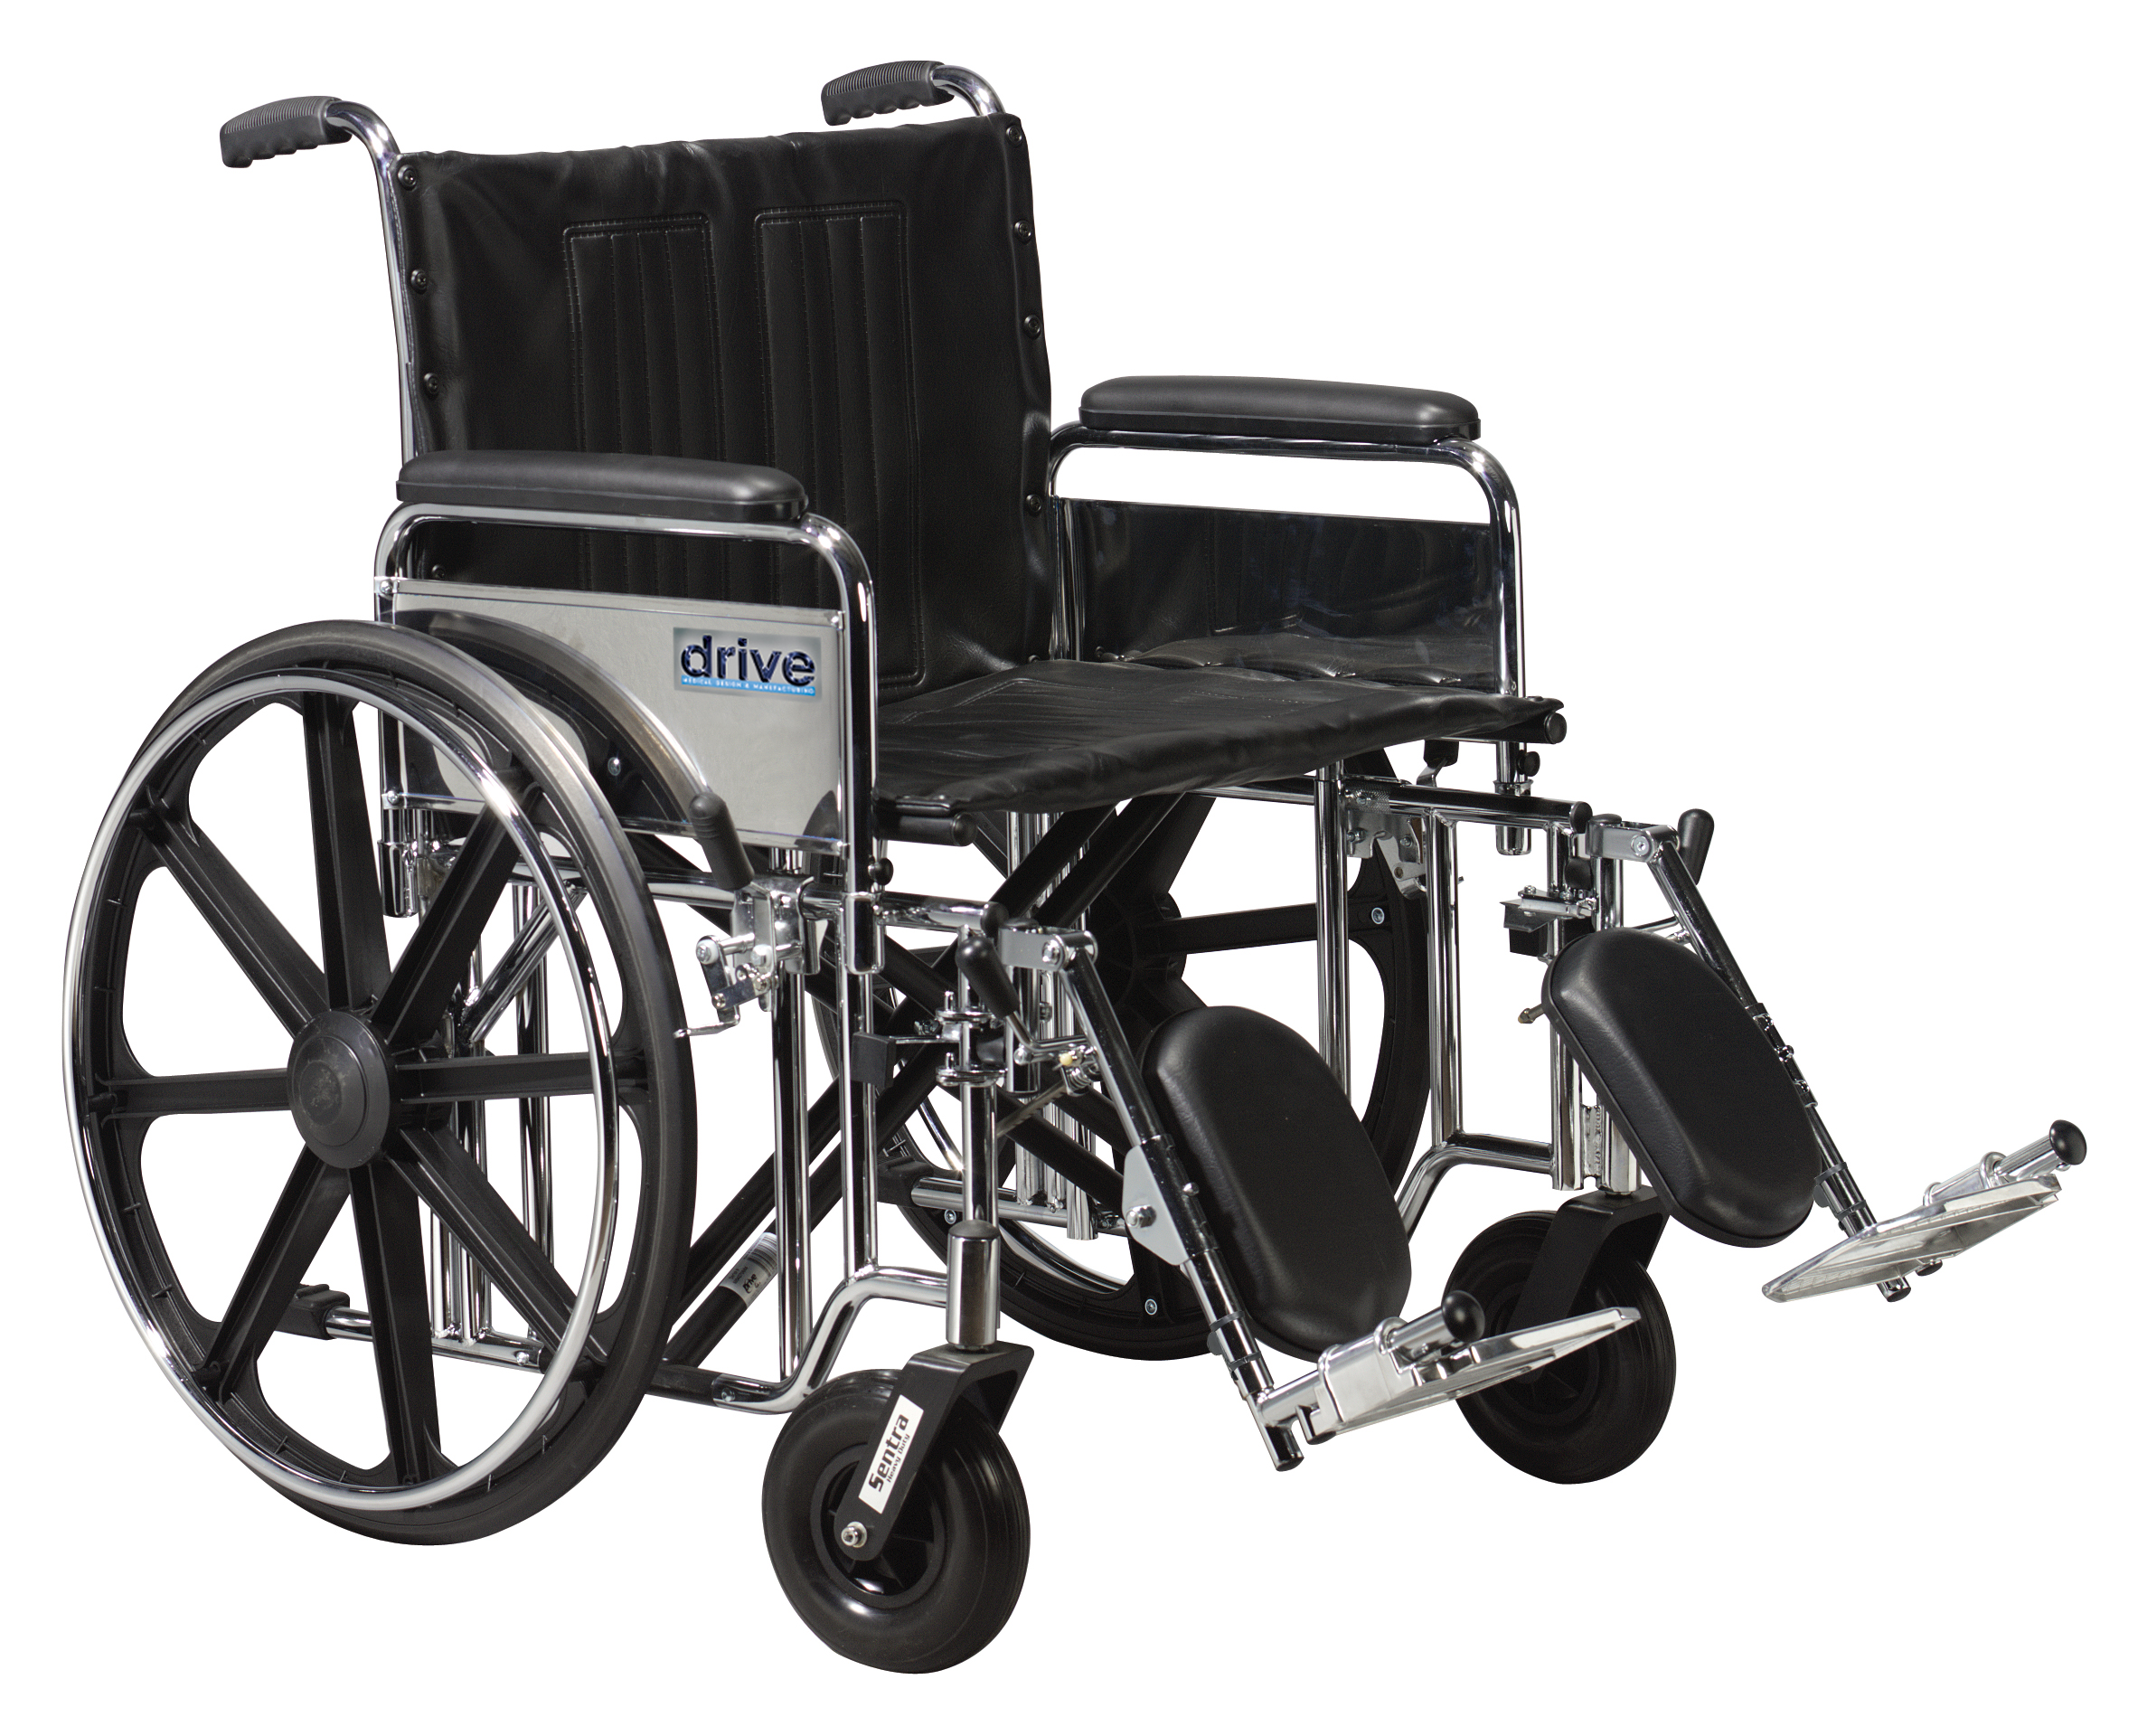 Drive Sentra Extra Heavy Duty Wheelchair with Various Arm Styles and Front Rigging Options